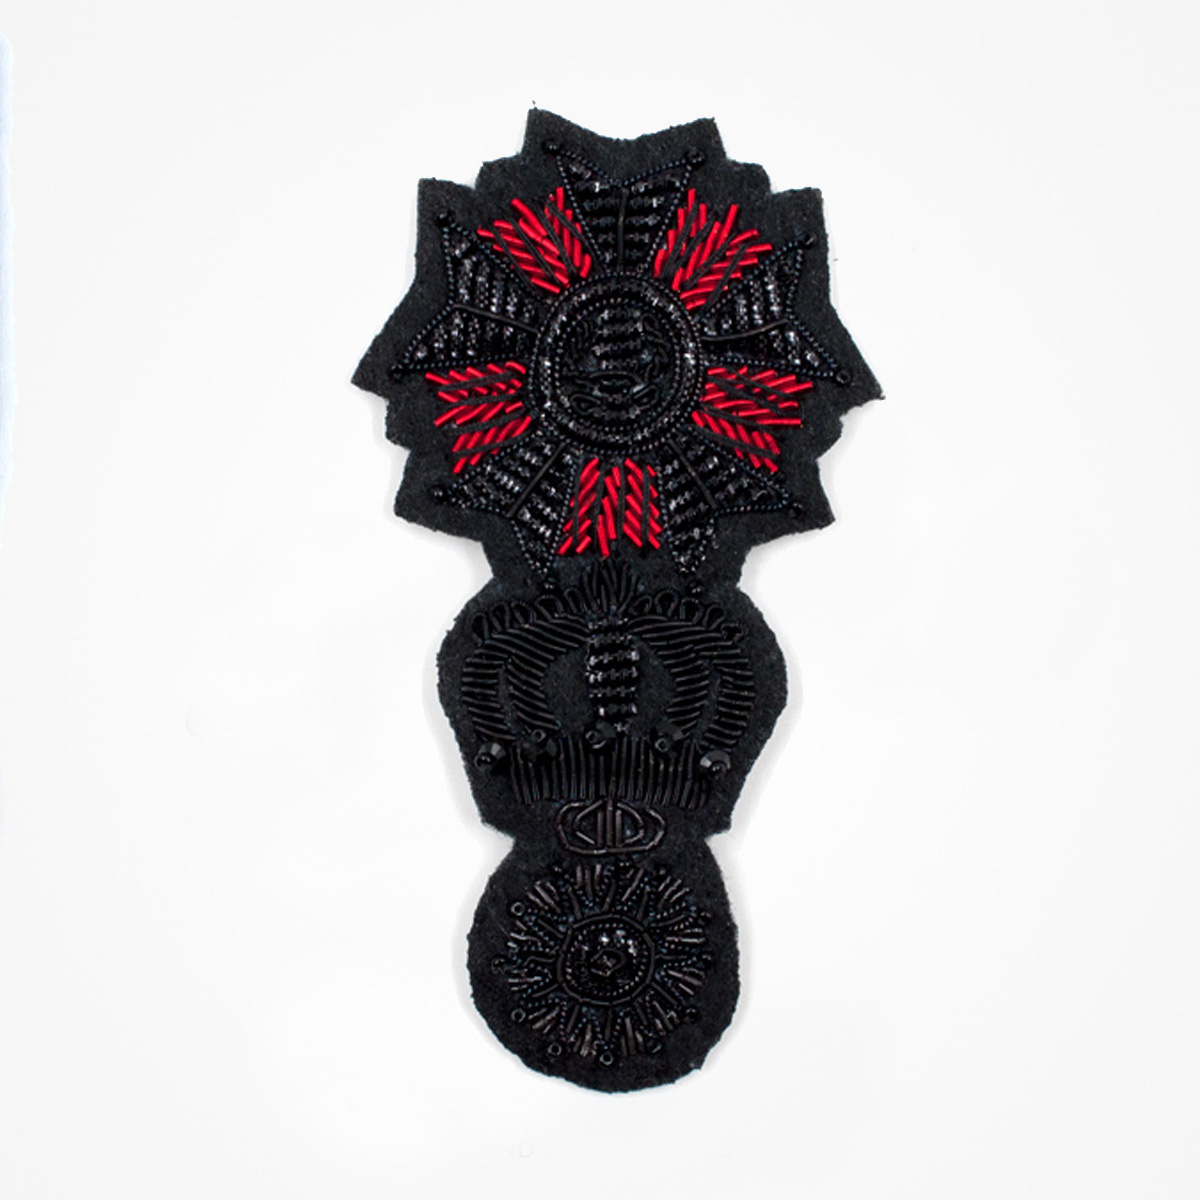 Qg - 3512 - Fashionable 3D embroidered look Made by skilled artisans Bullion wire and silk thread hand Stitched on Black color Felt Available in gold and silver colors Size = 82 mm height 47 mm width sew-on backing: Perfect for caps, sports jacket, leather jackets, blazer coat, Blazer Pocket, shirts uniforms, Accessories and many More Pin backing: easy to removable 5